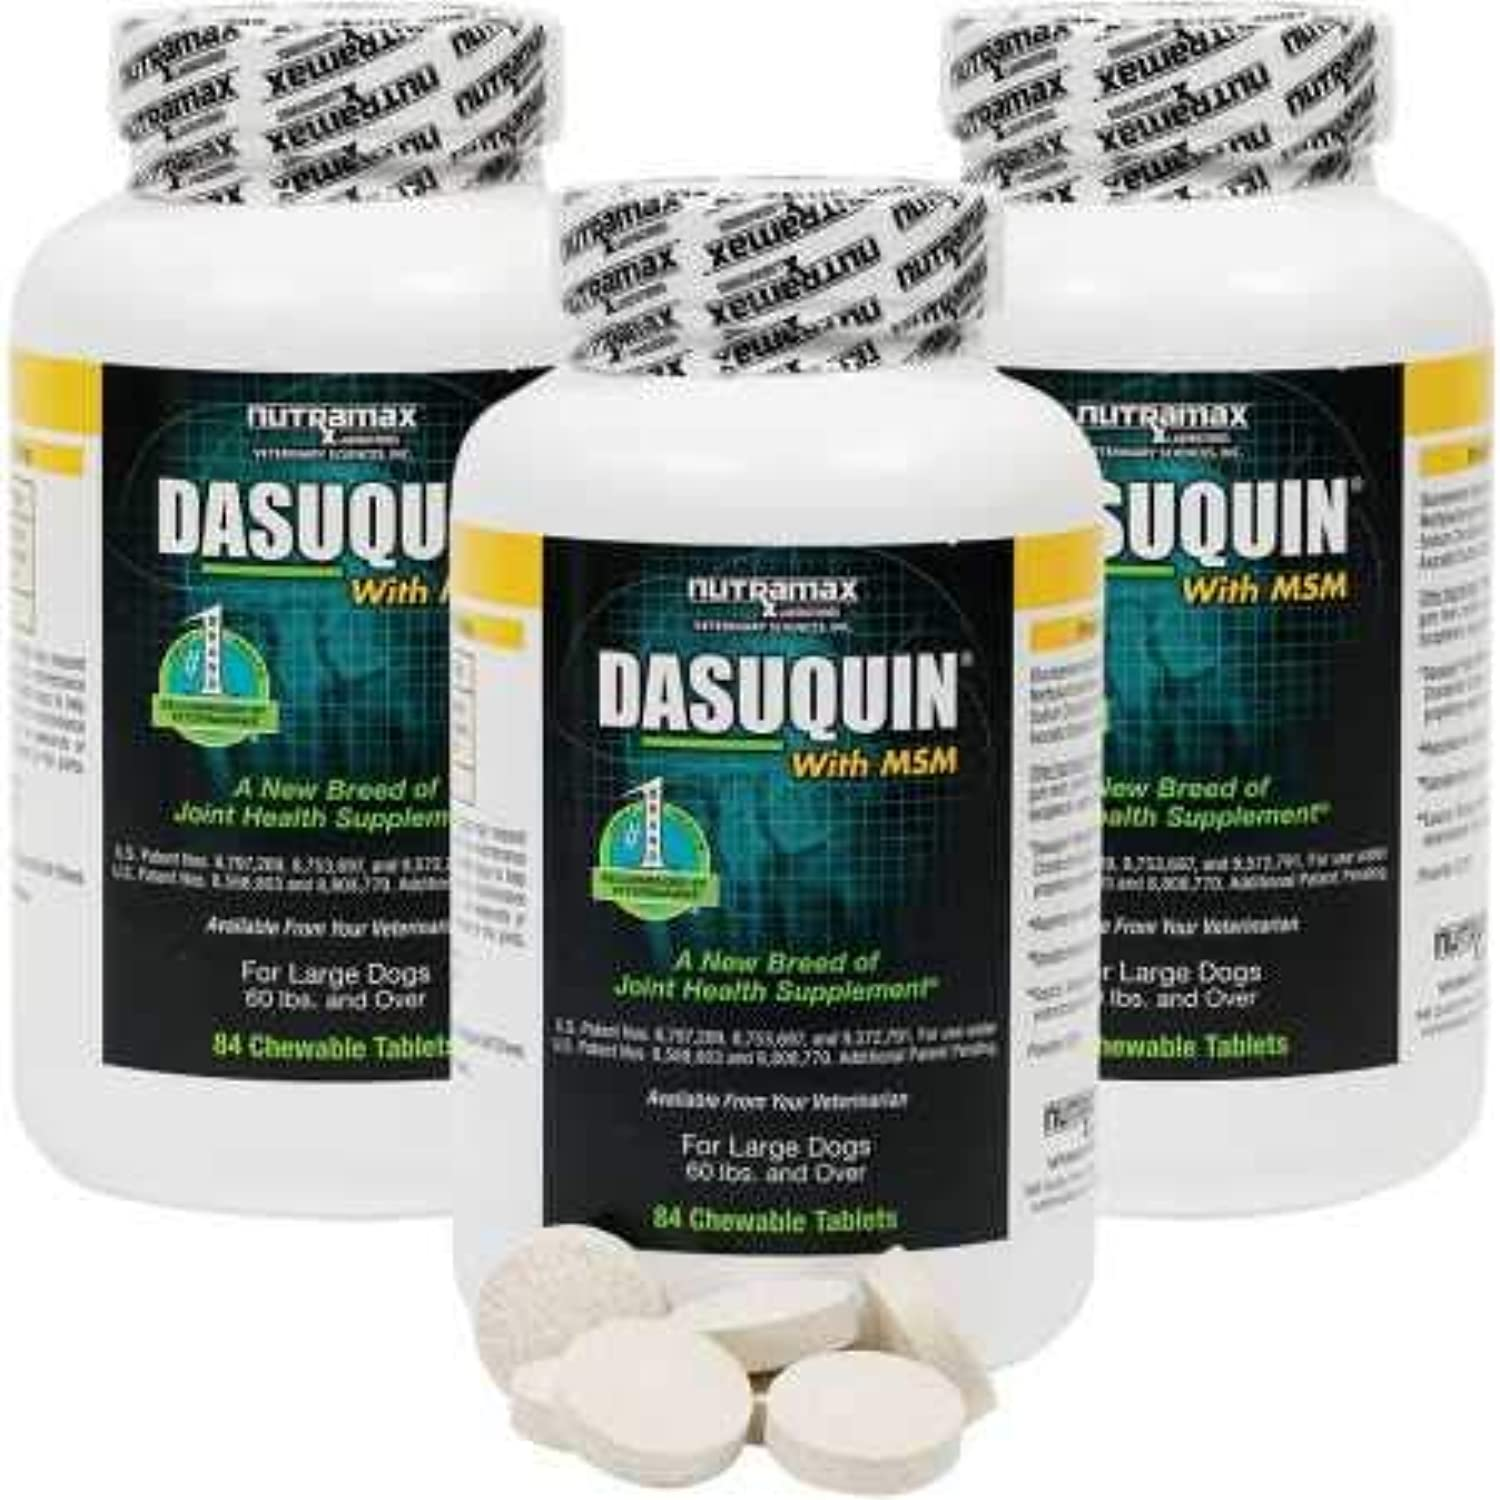 Dasuquin 3PACK for Large Dogs 60 lbs. Over with MSM (252 Chewable Tabs)